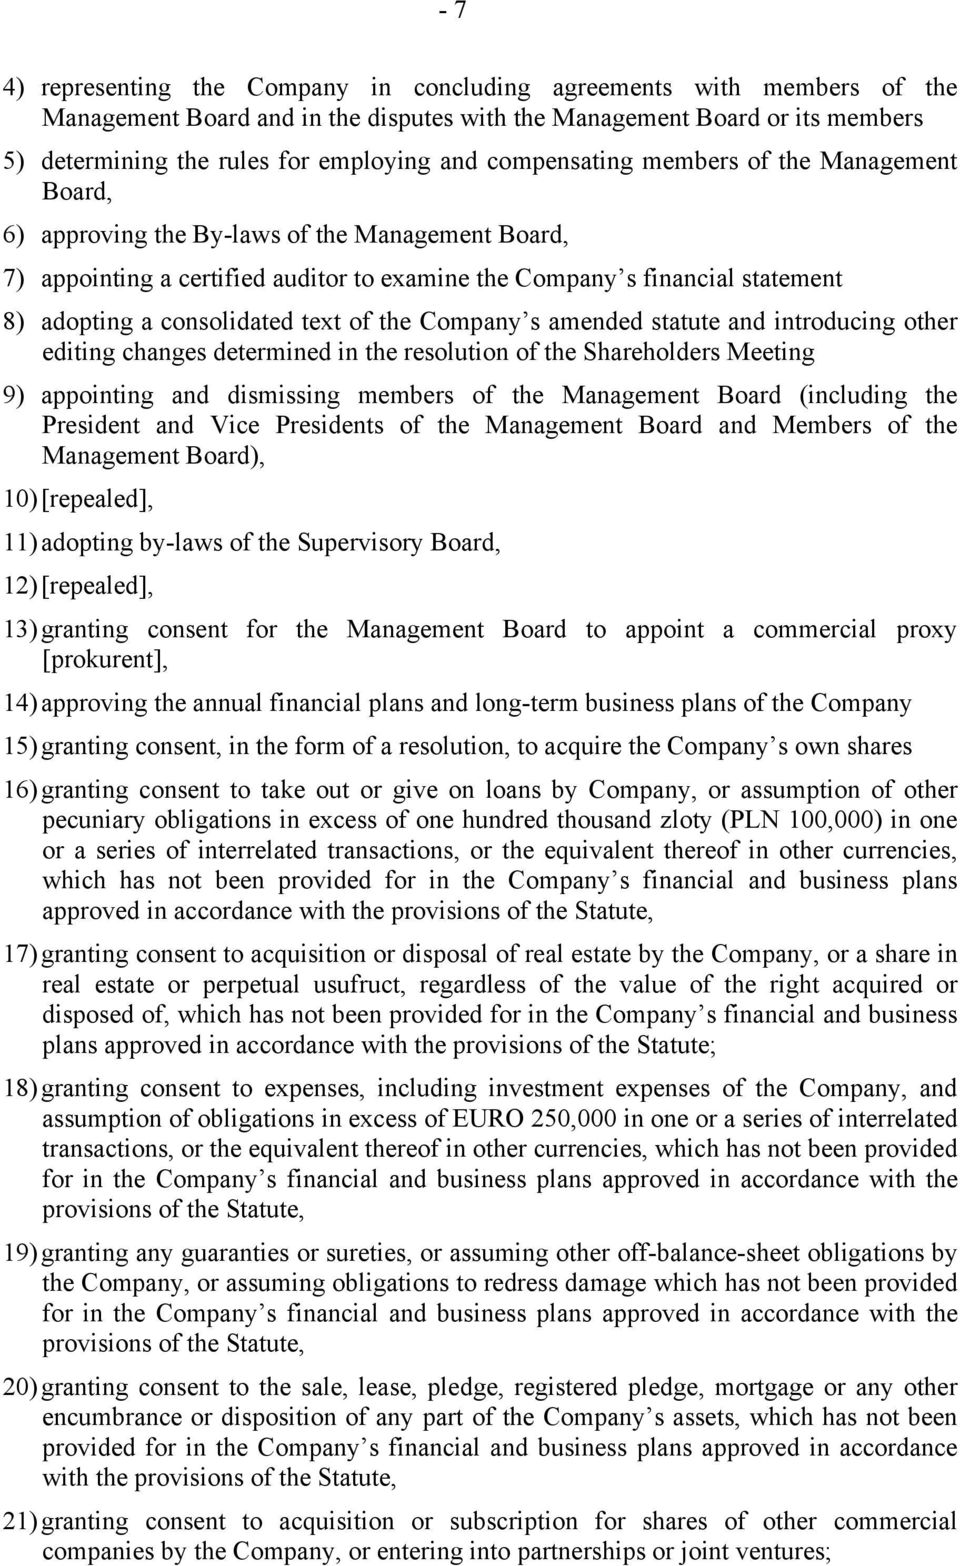 consolidated text of the Company s amended statute and introducing other editing changes determined in the resolution of the Shareholders Meeting 9) appointing and dismissing members of the